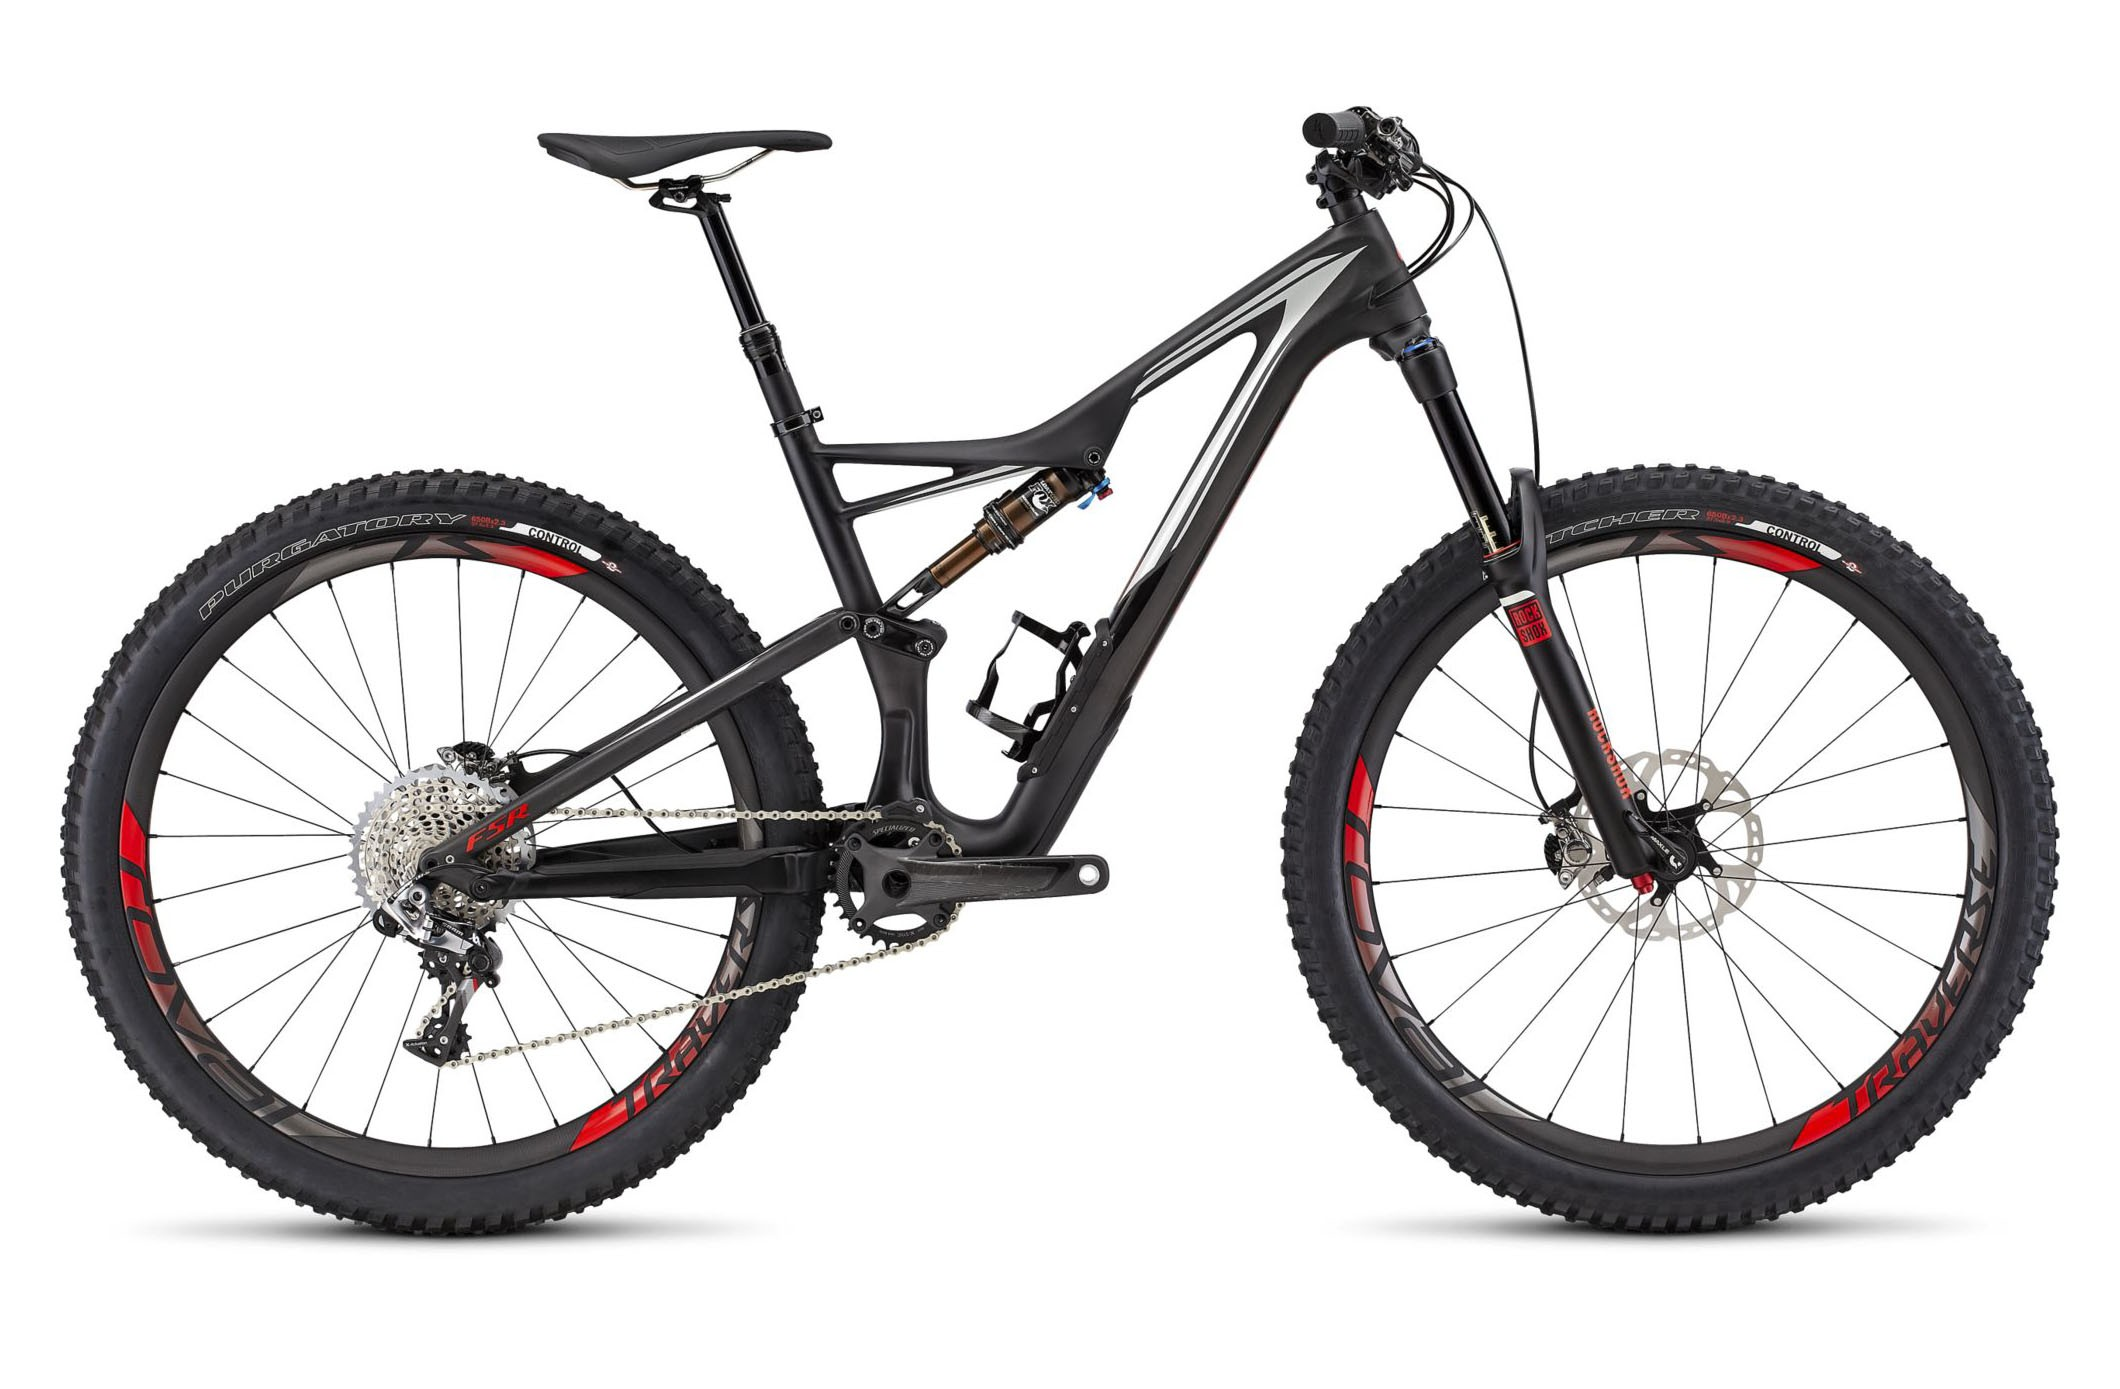 Горный велосипед Specialized S-Works Stumpjumper FSR 650b (2016)